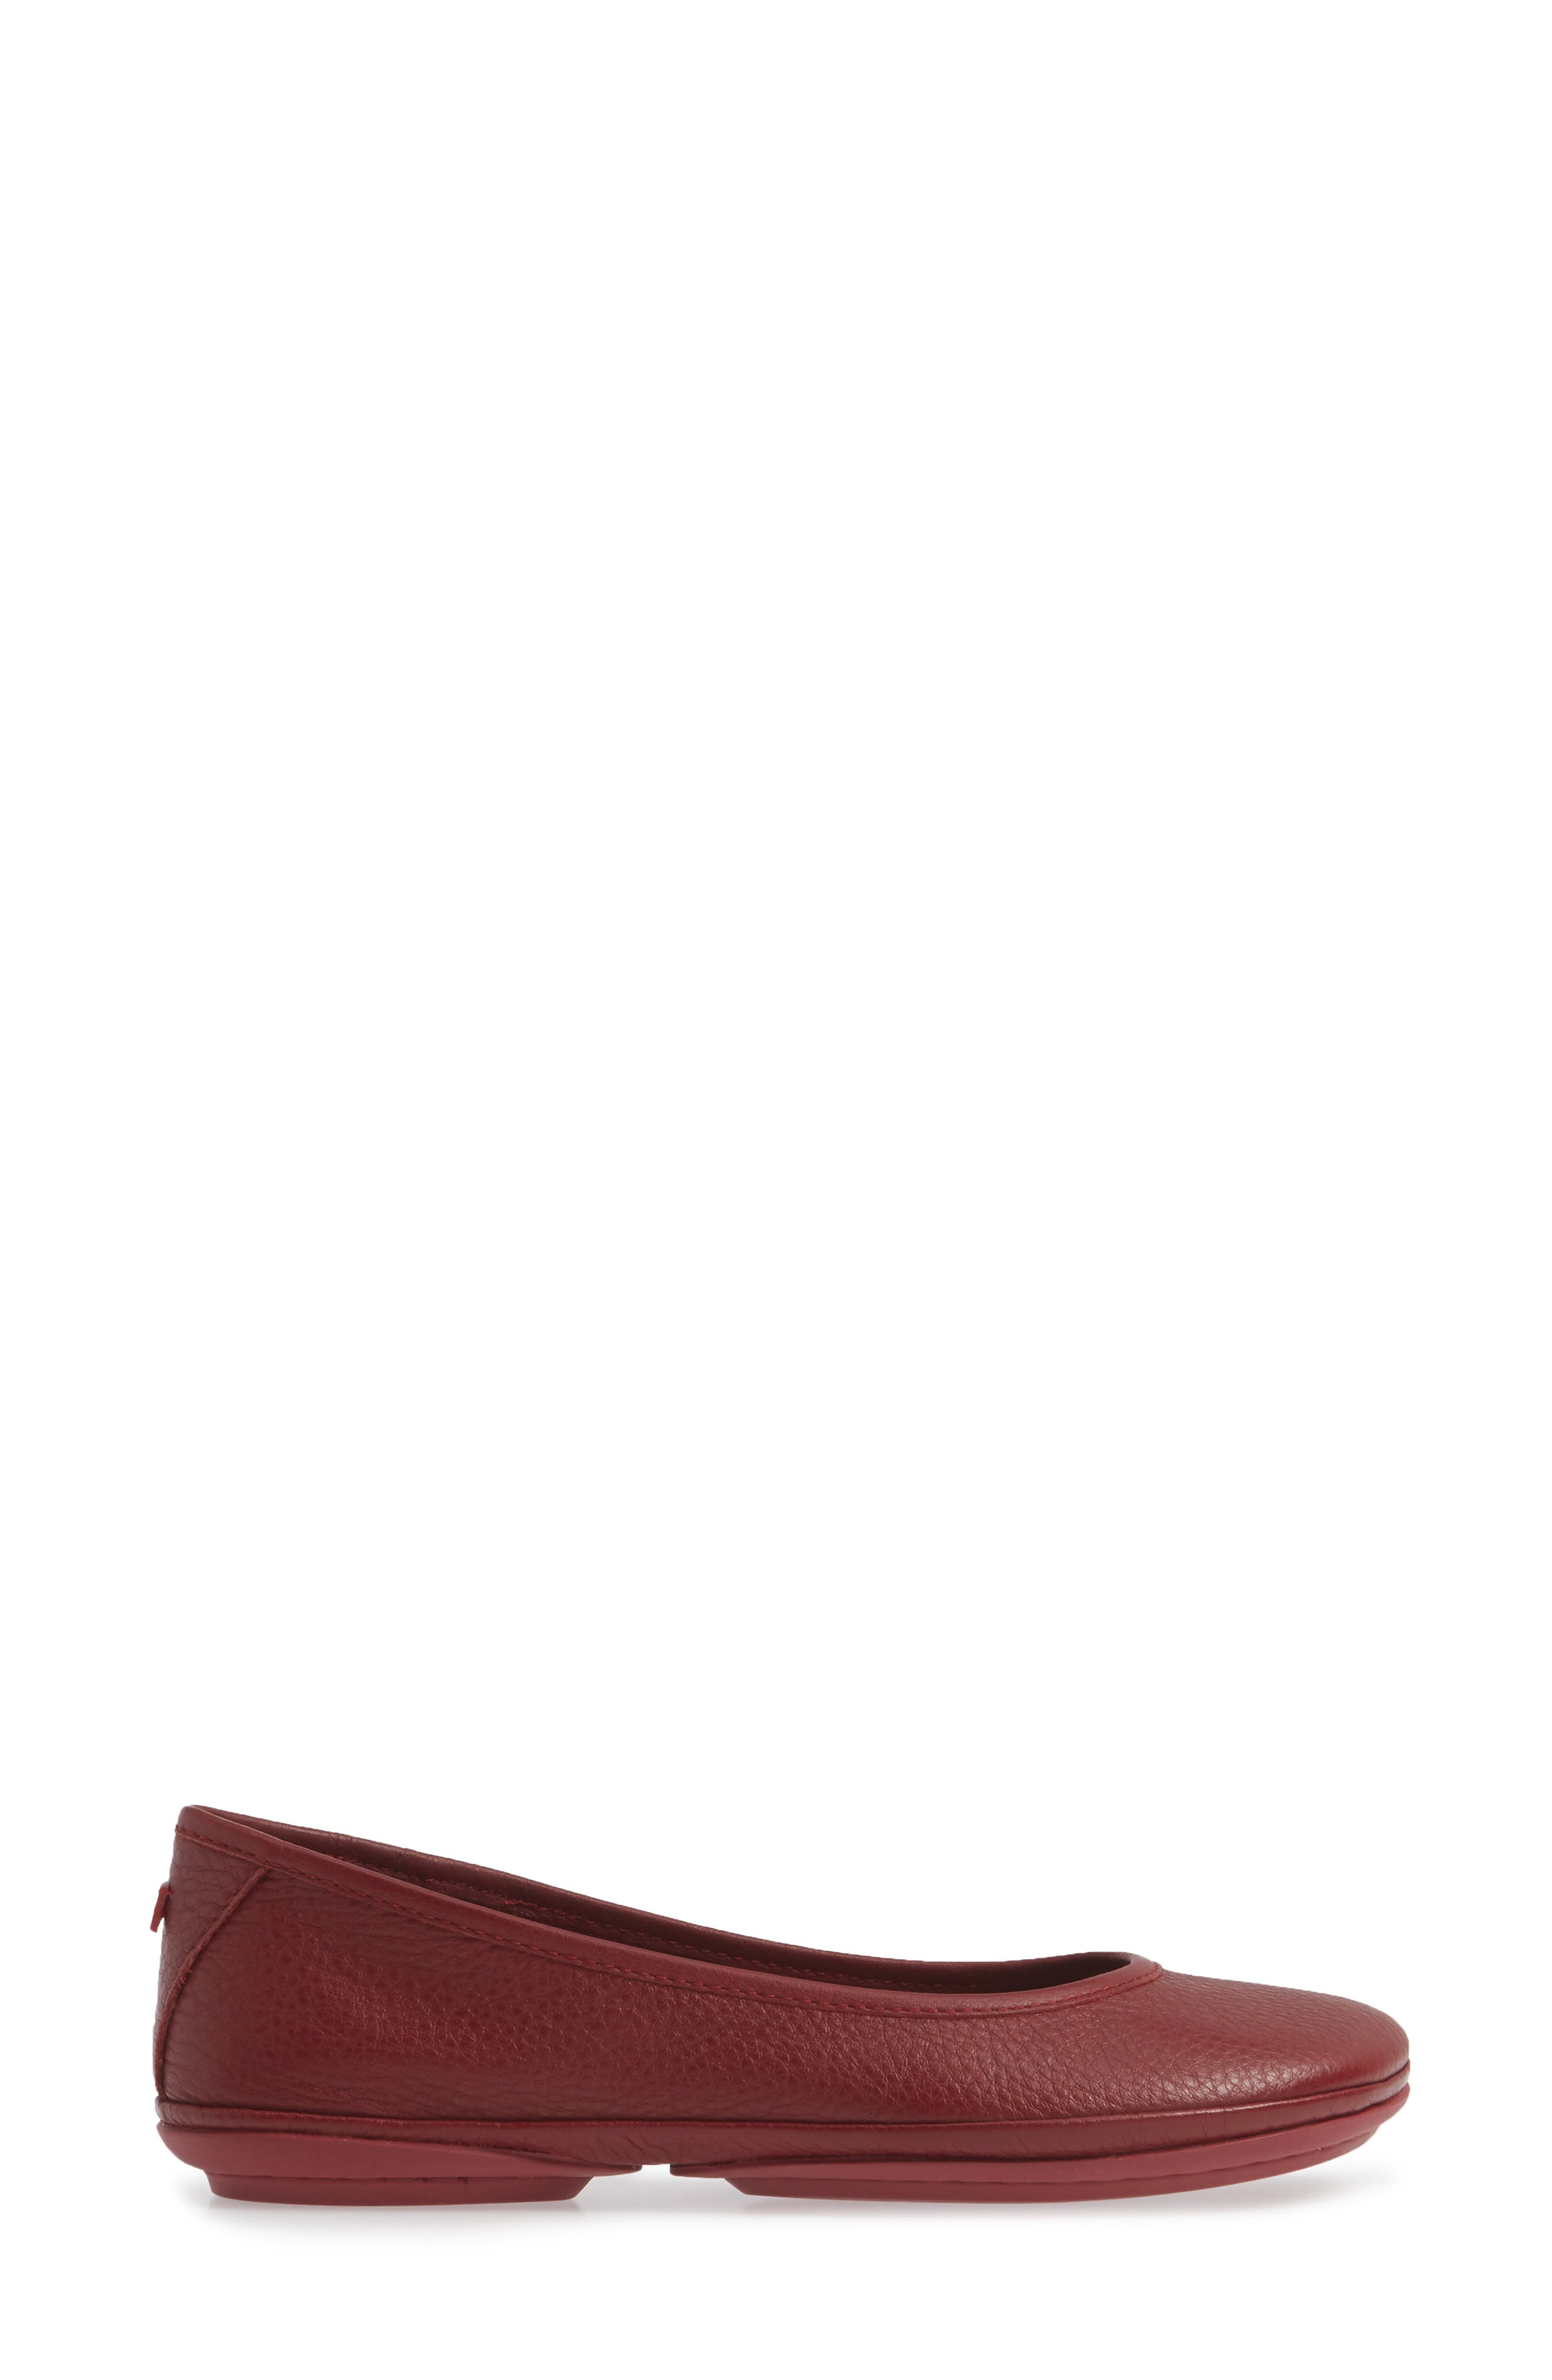 Right Nina Ballet Flat,                             Alternate thumbnail 3, color,                             RED LEATHER